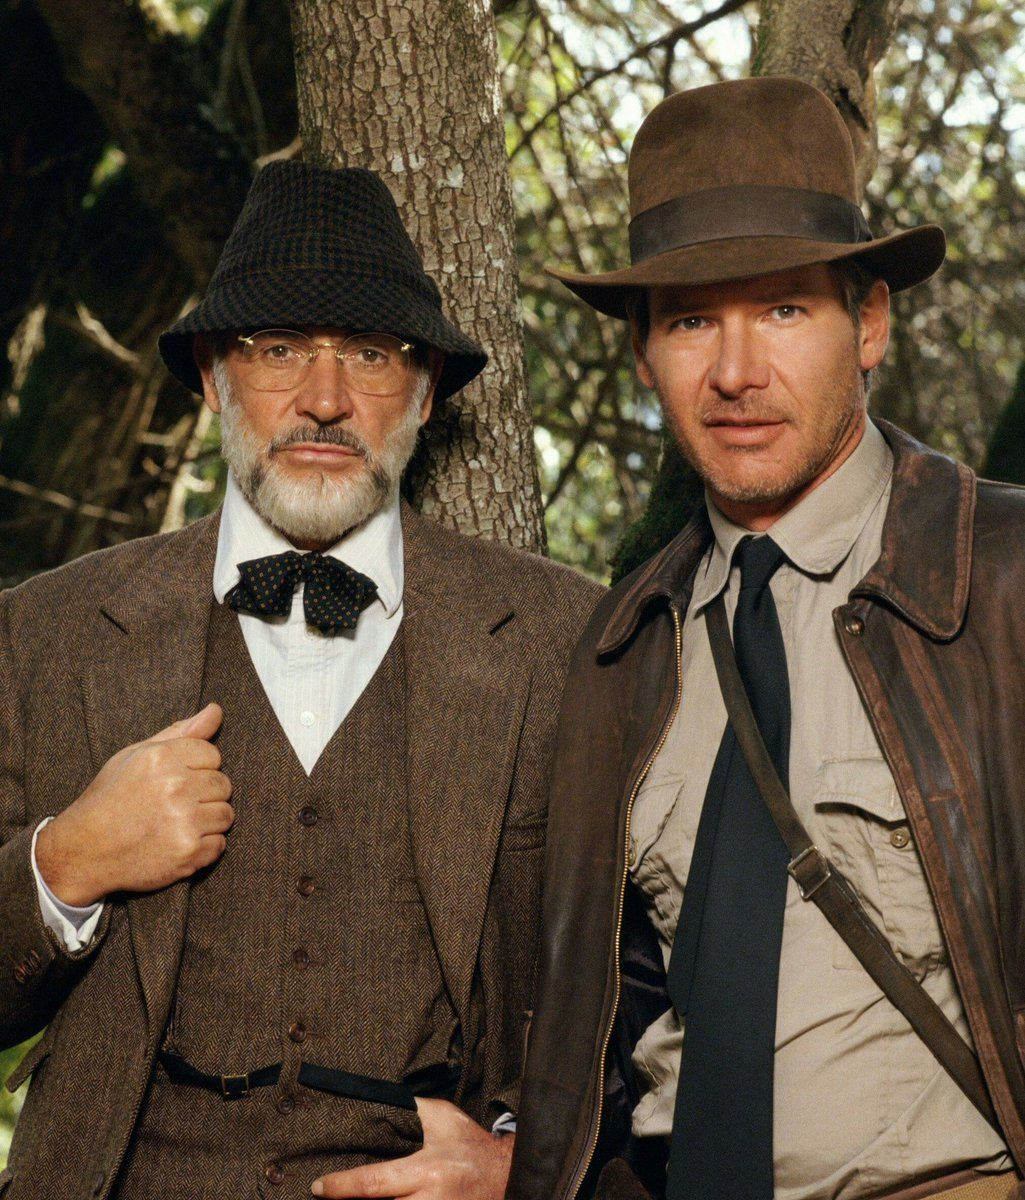 Twitter Indiana jones films, Indiana jones, Harrison ford